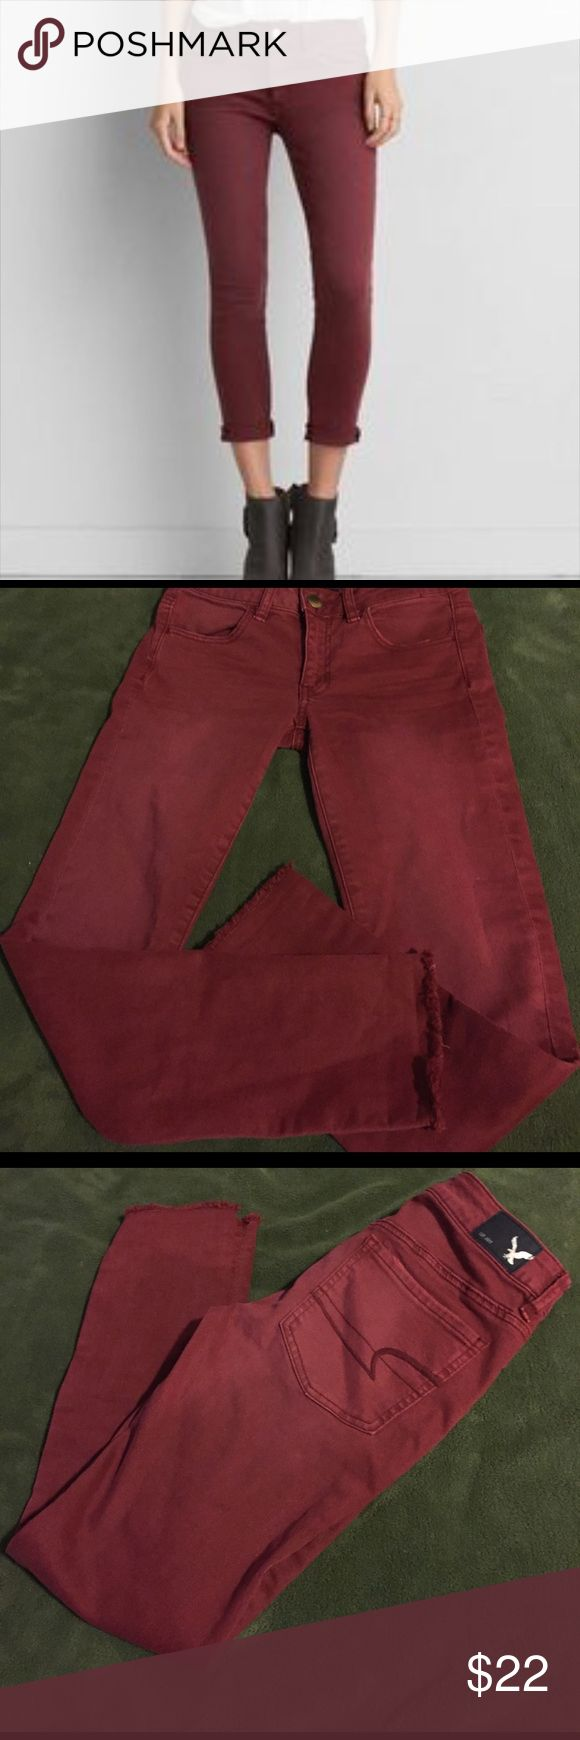 American Eagle jegging crop jeans These are a burgundy color pair of jeggings from American Eagle in the fit jegging crop.. the stock photo has the hens rolled, these are raw edge bottoms but can be rolled also.. great condition American Eagle Outfitters Jeans Ankle & Cropped